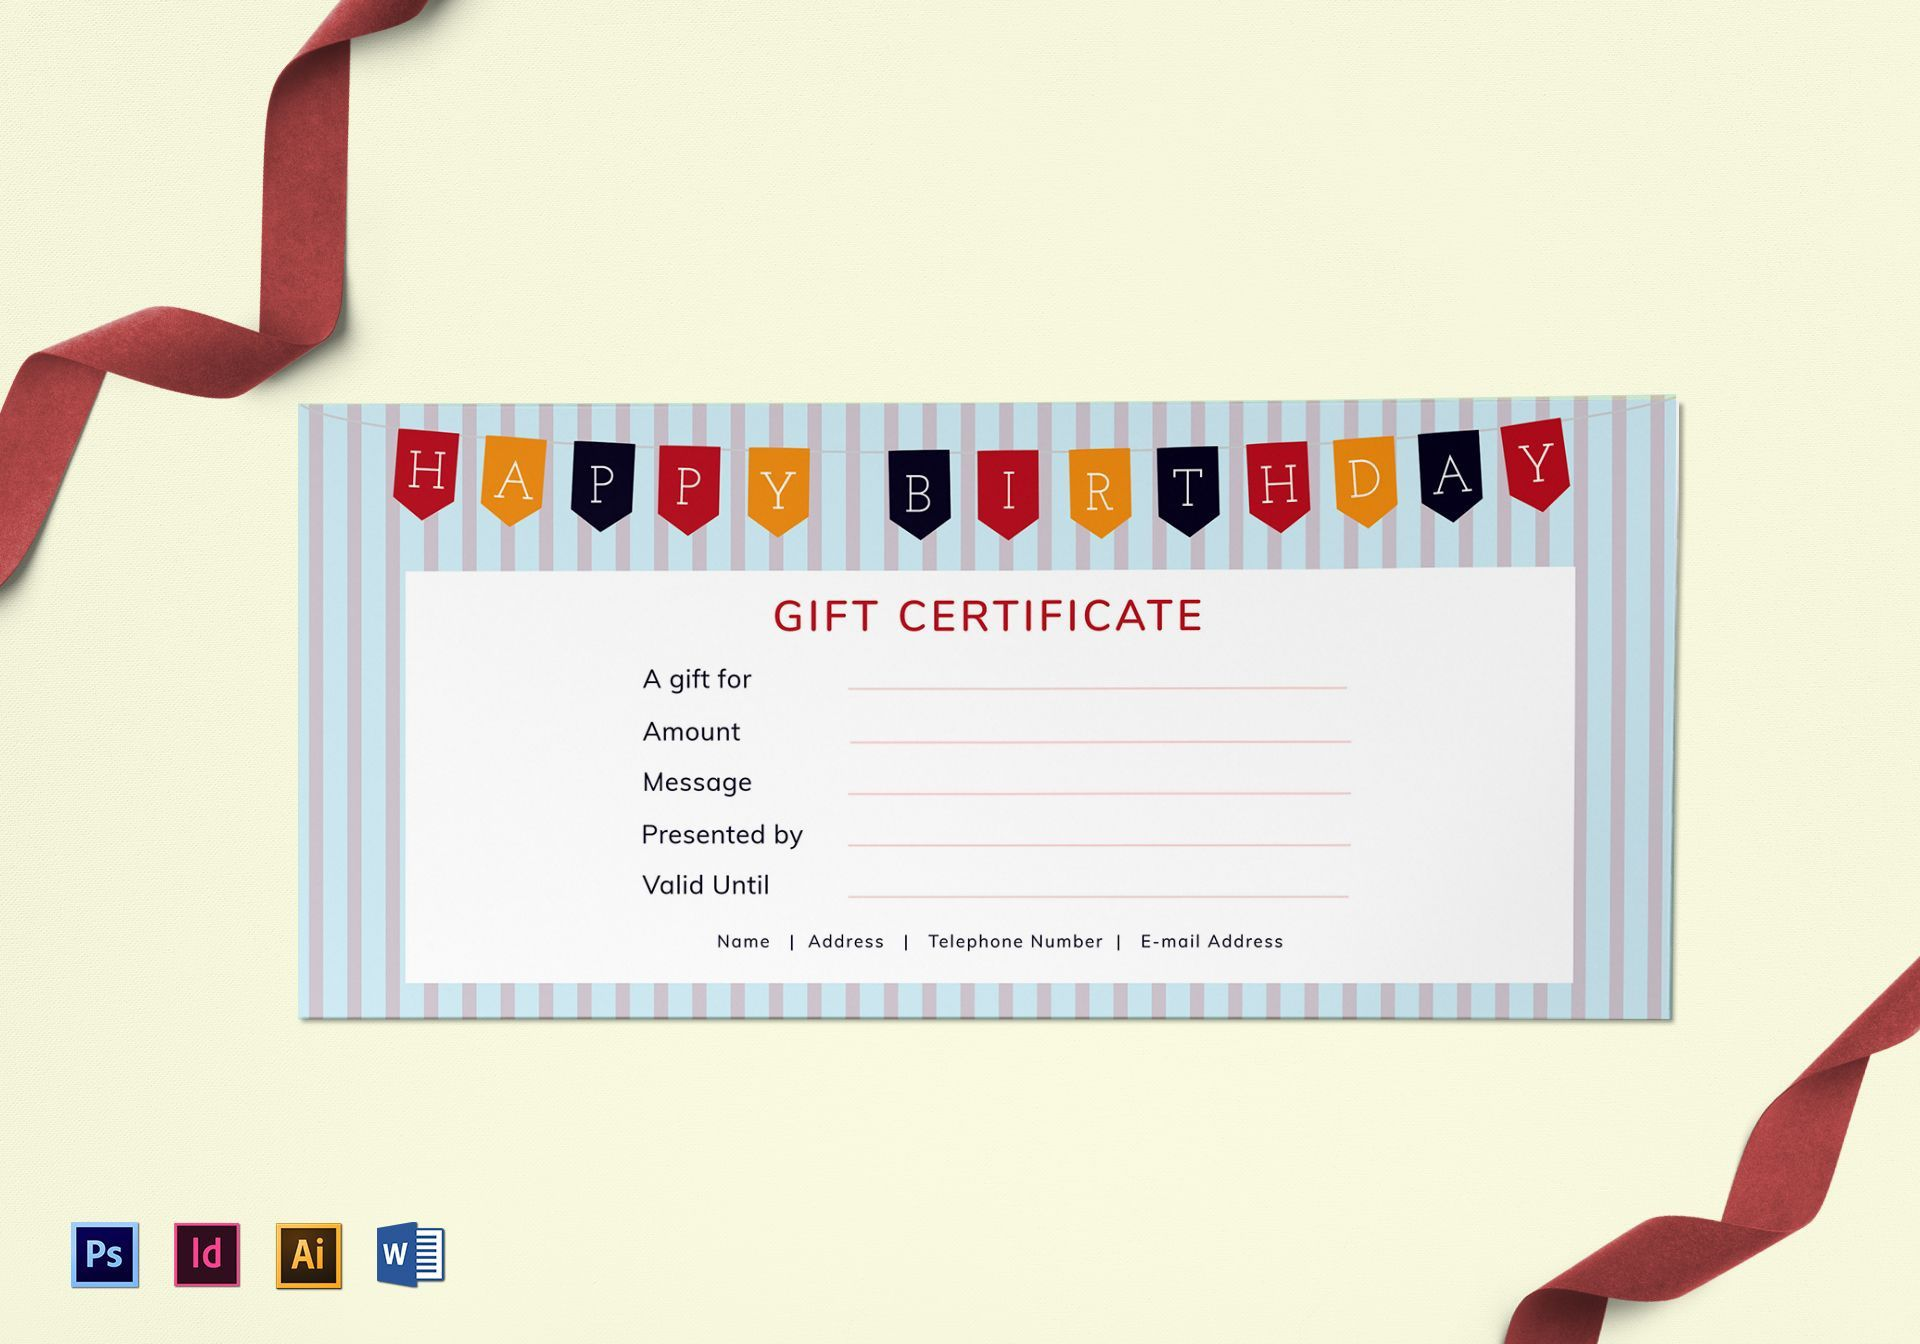 006 Awful Free Printable Birthday Gift Voucher Template High Definition Full